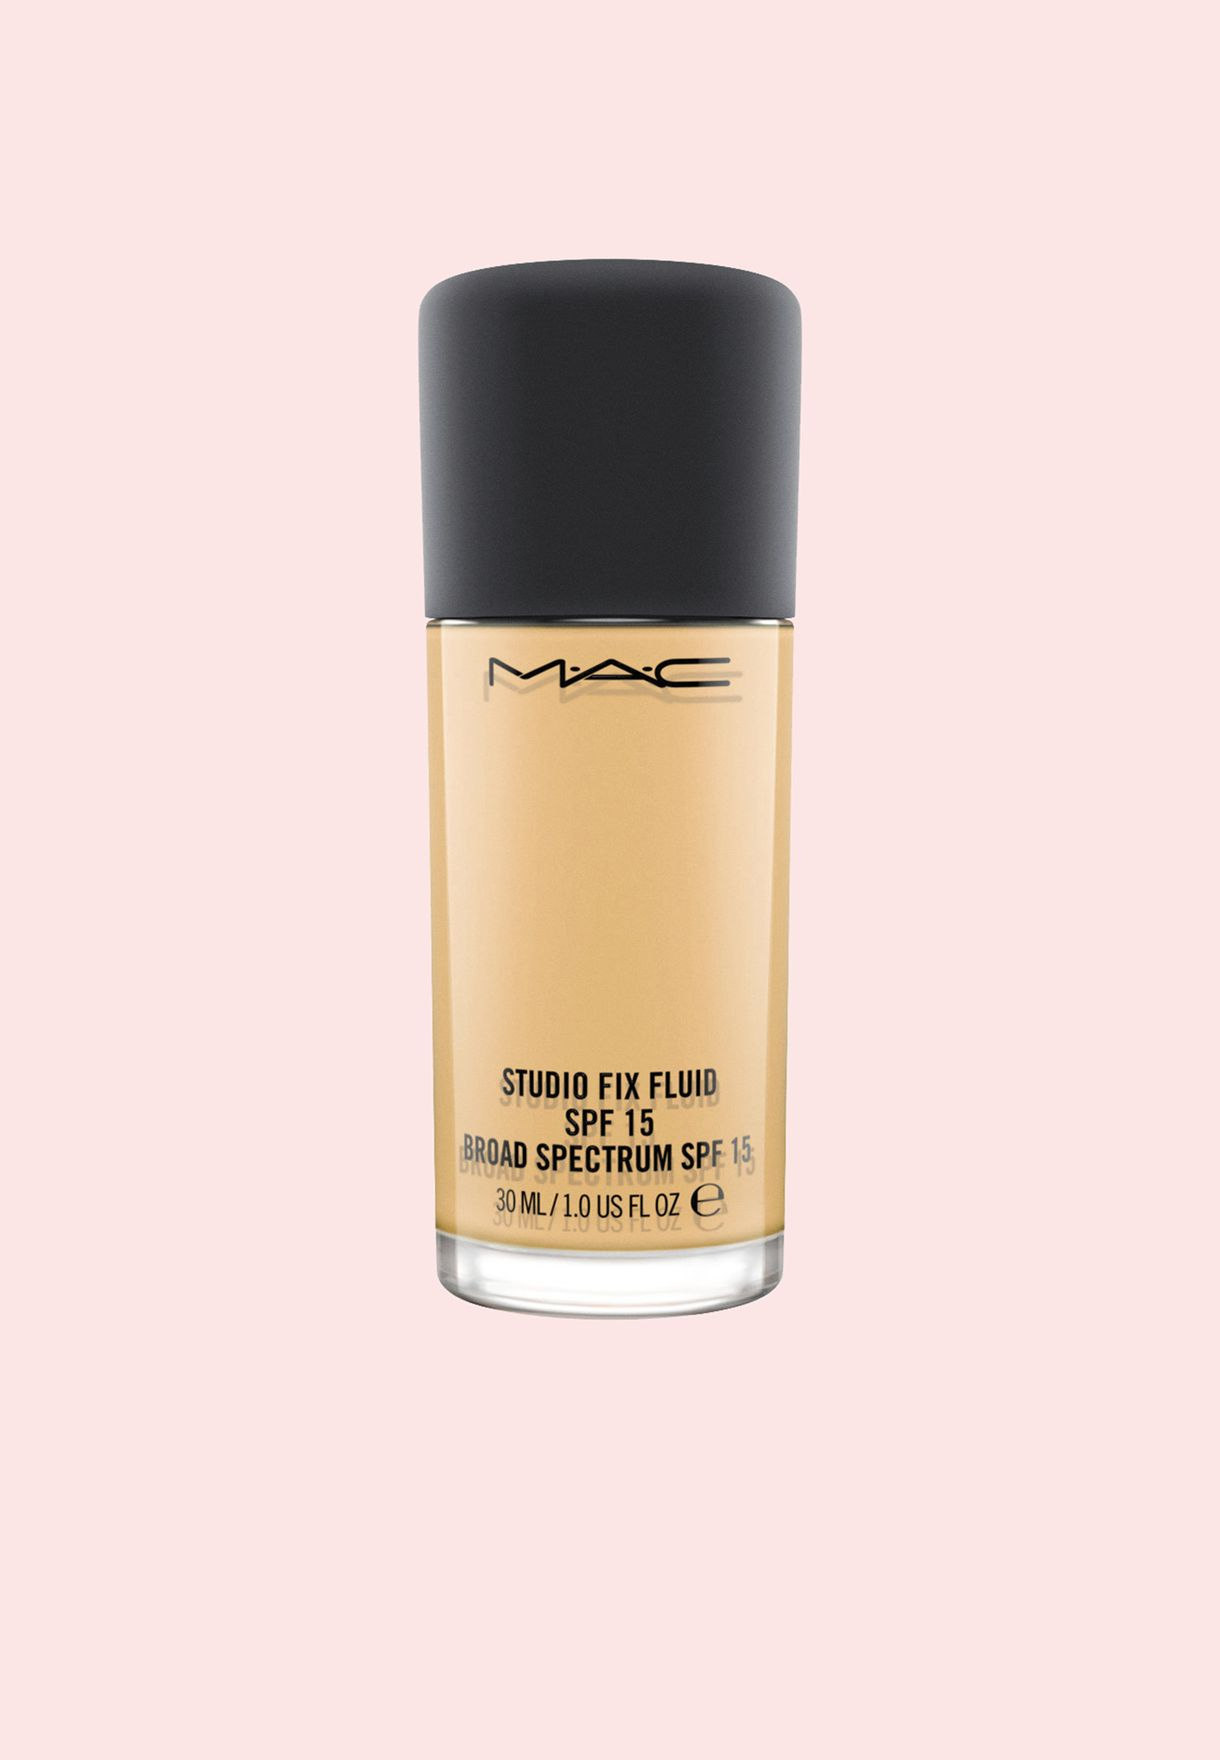 Studio Fix Fluid SPF 15 Foundation - NC 38